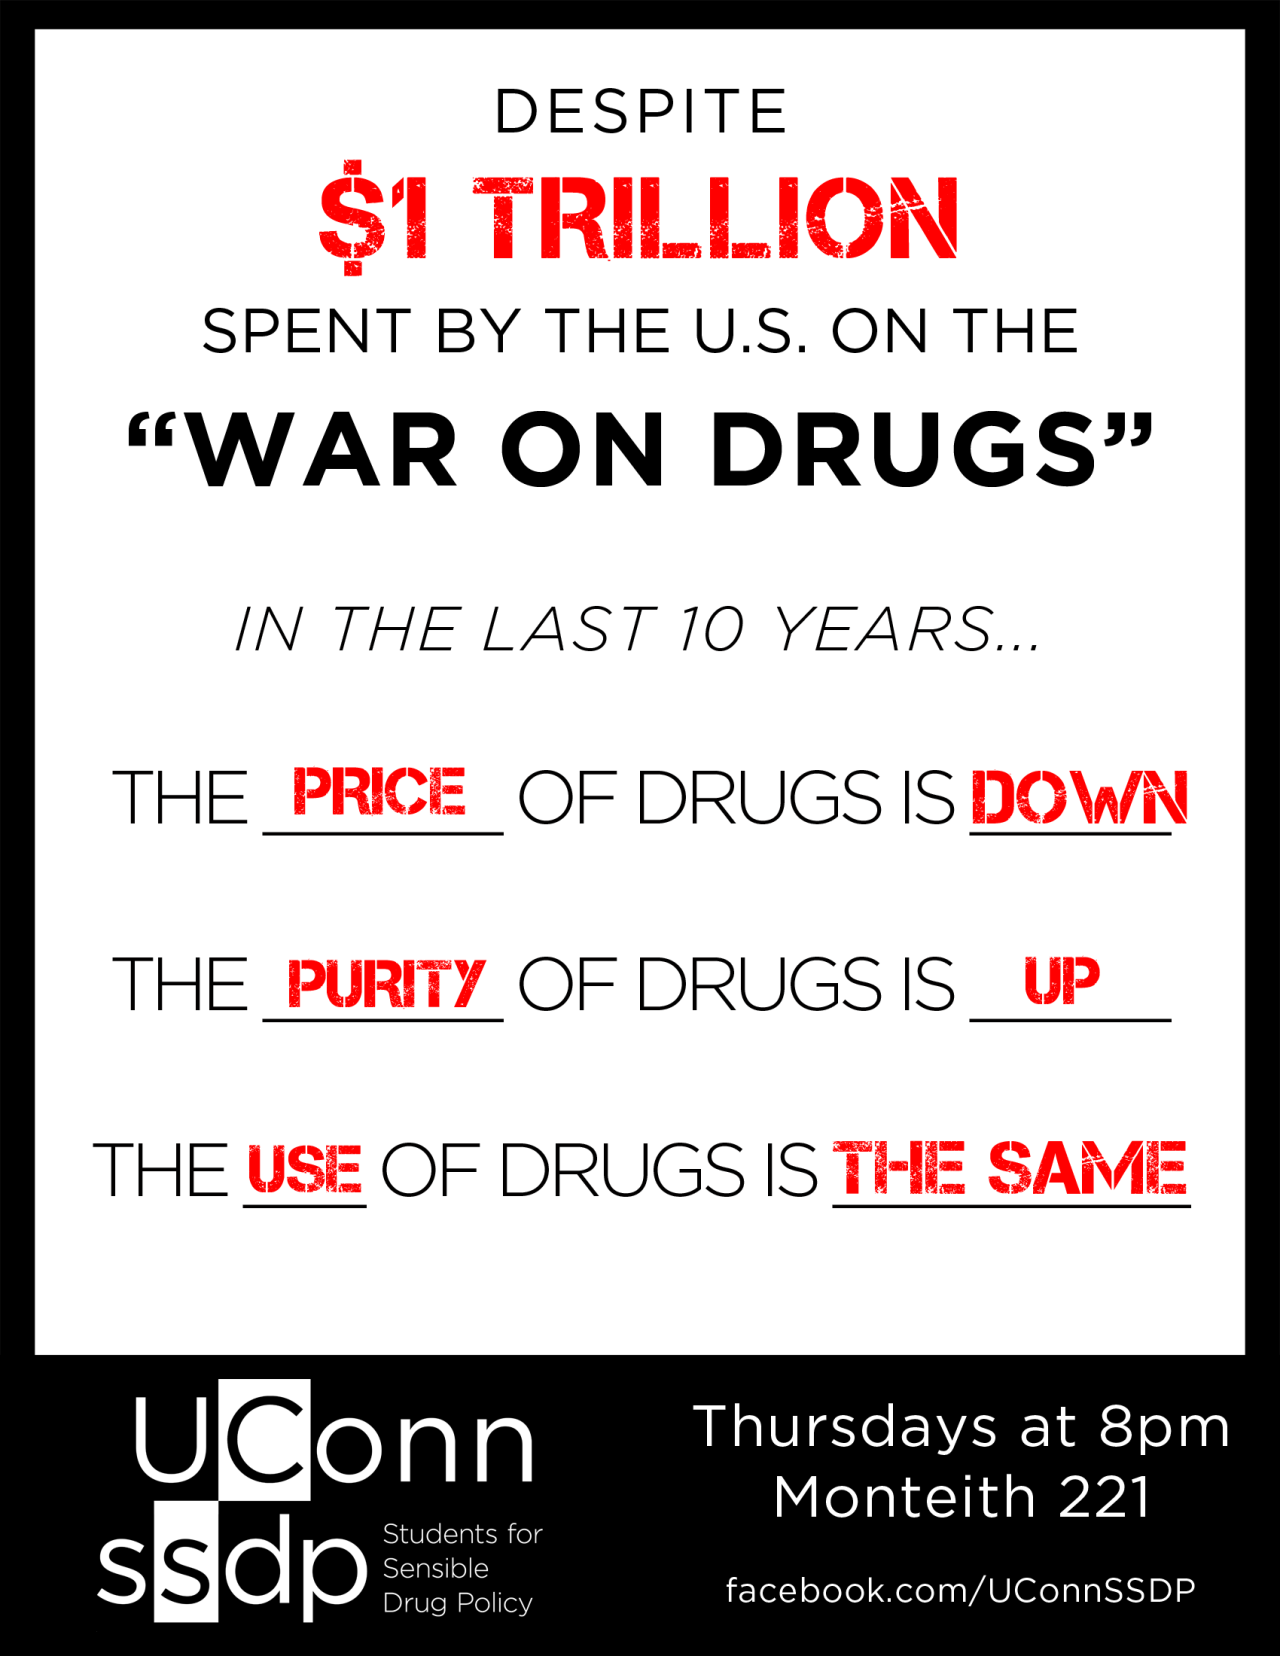 Learn more about how to help fix the failure that is the Drug War — Come to SSDP! Tonight and every Thursday at 8pm in Monteith 221 fb|twitter